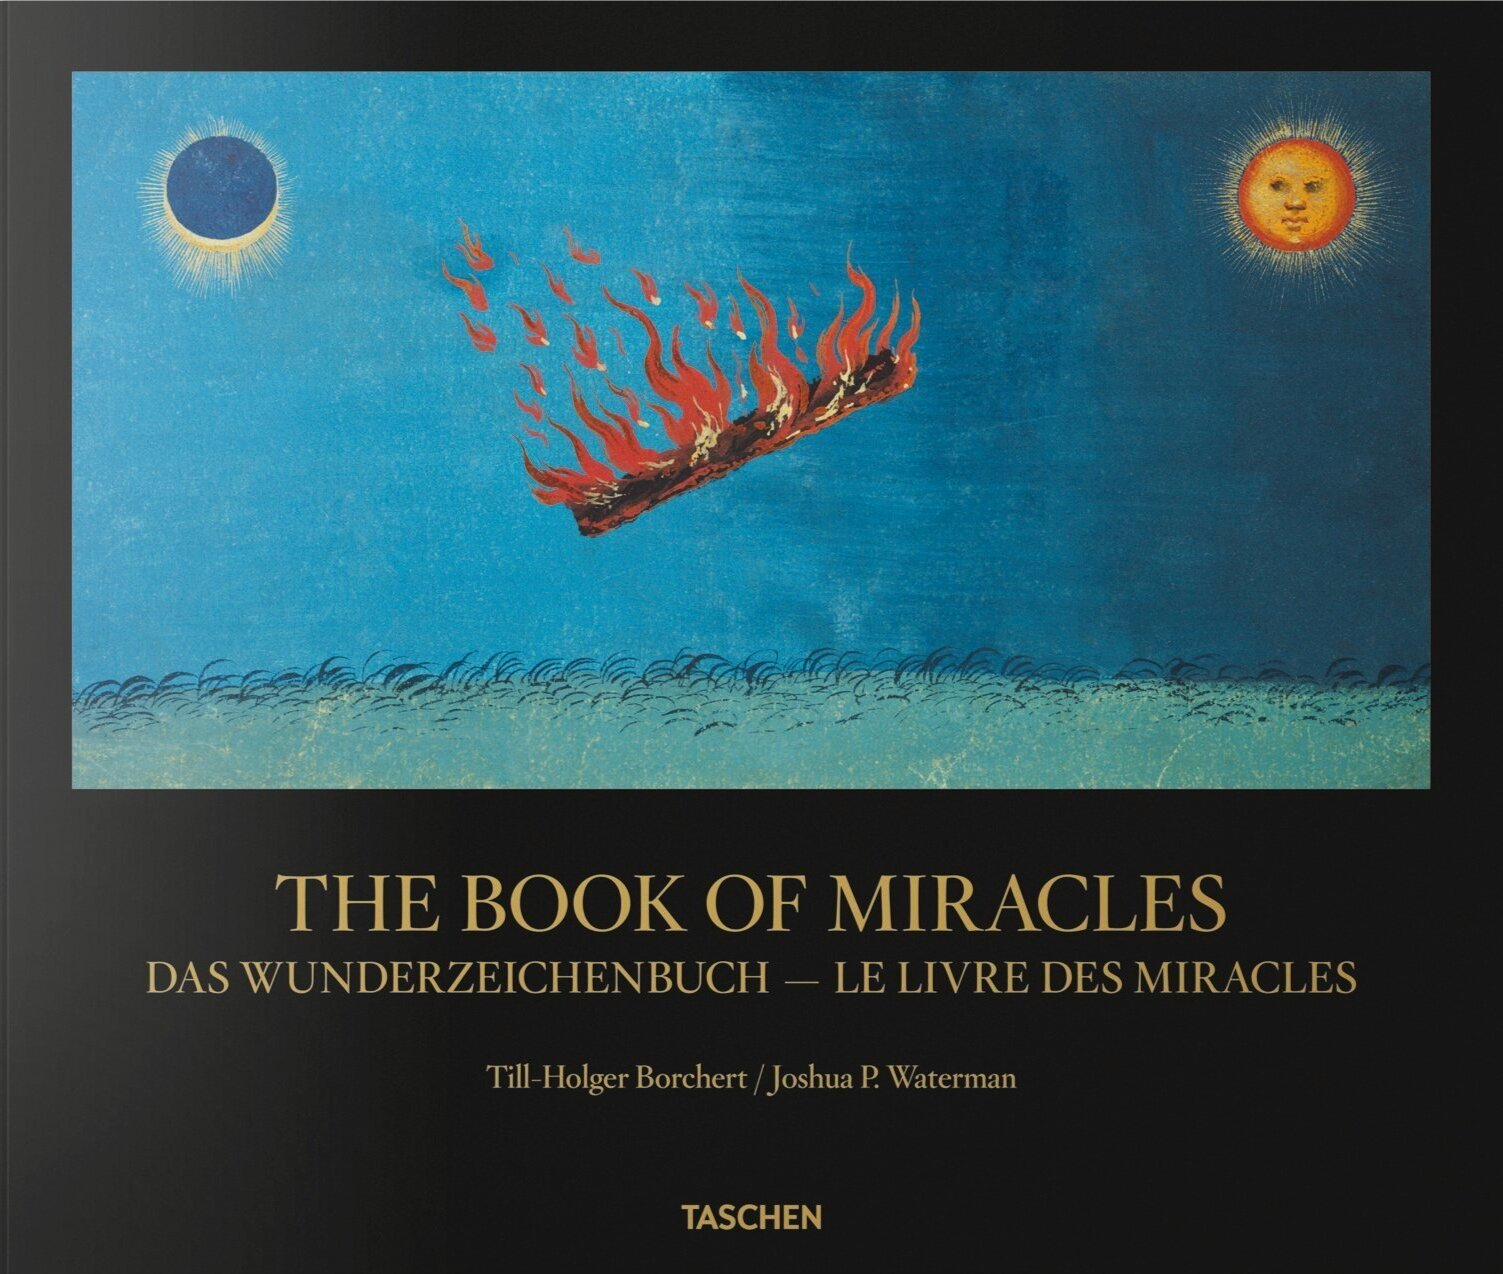 The Book of Miracles.  Amazon  |  Goodreads  |  WorldCat